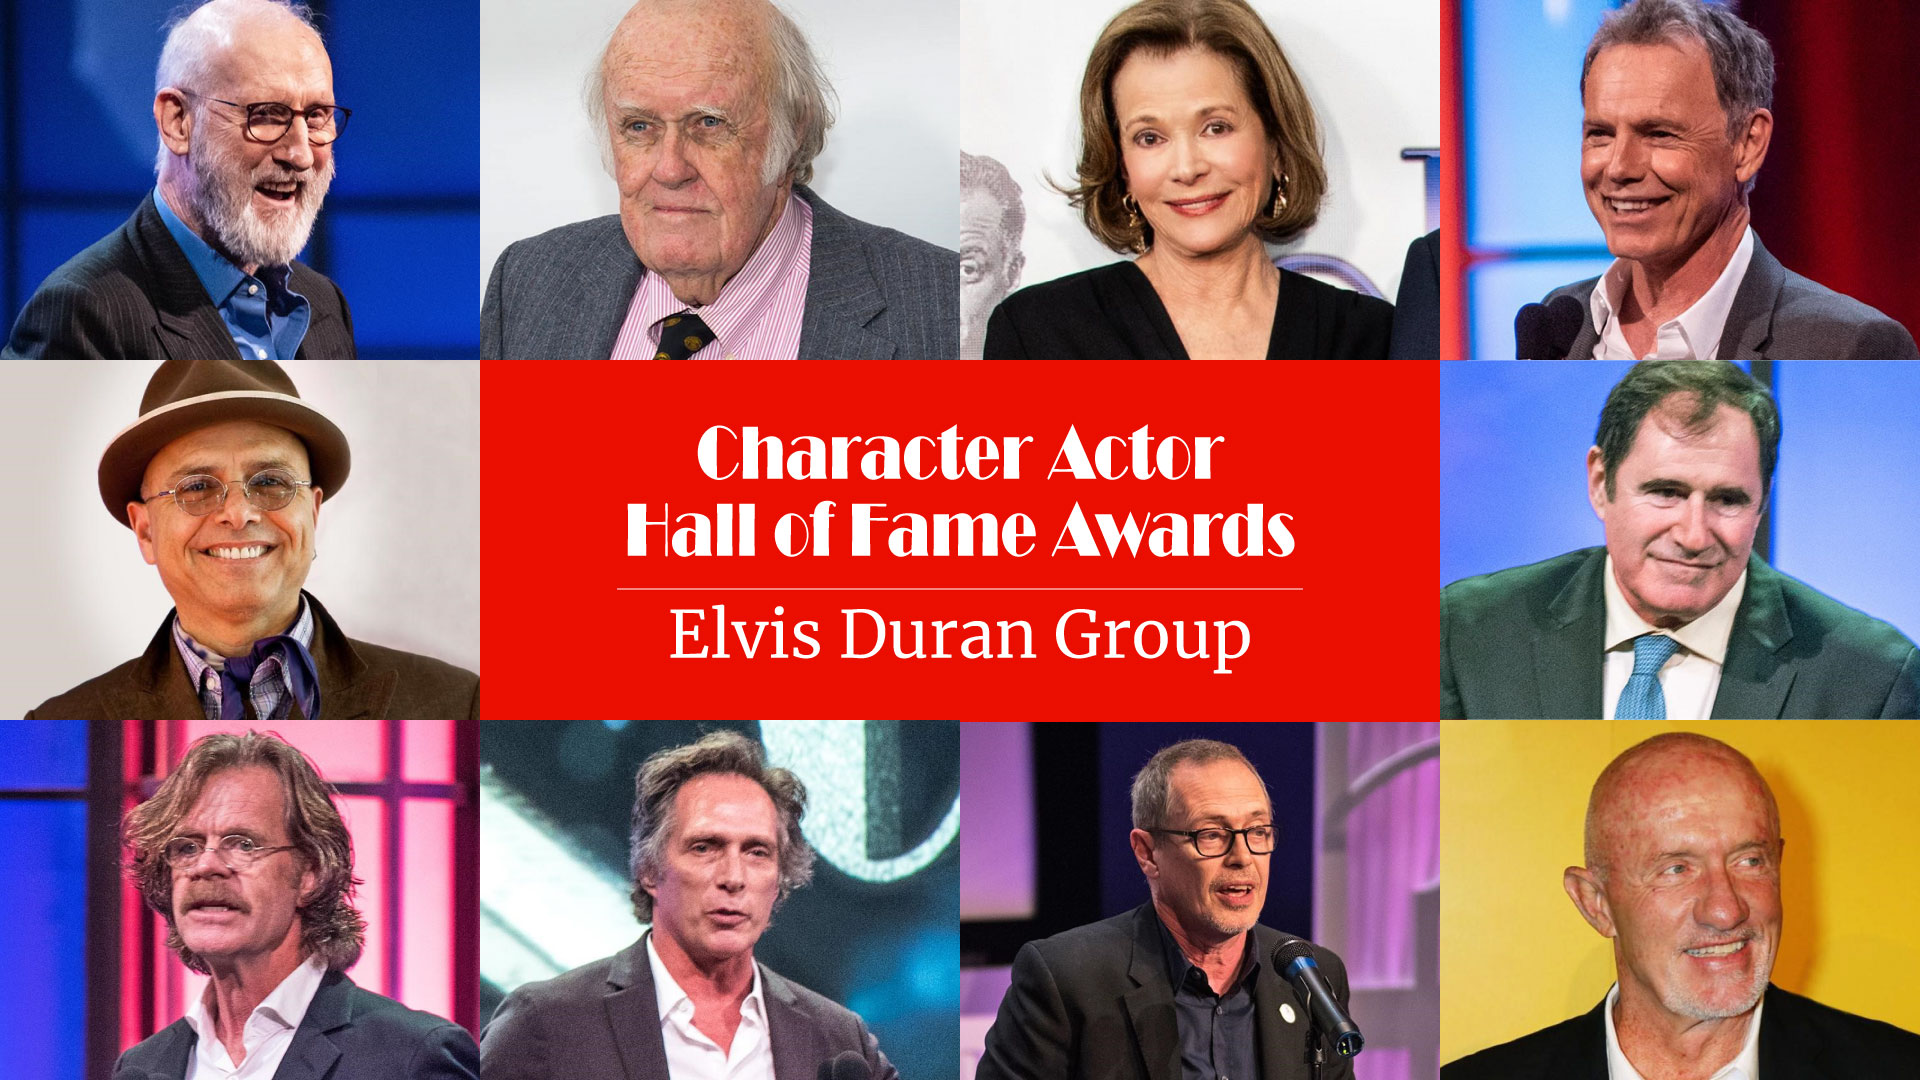 Character Actor Hall of Fame Awards - Elvis Duran Group